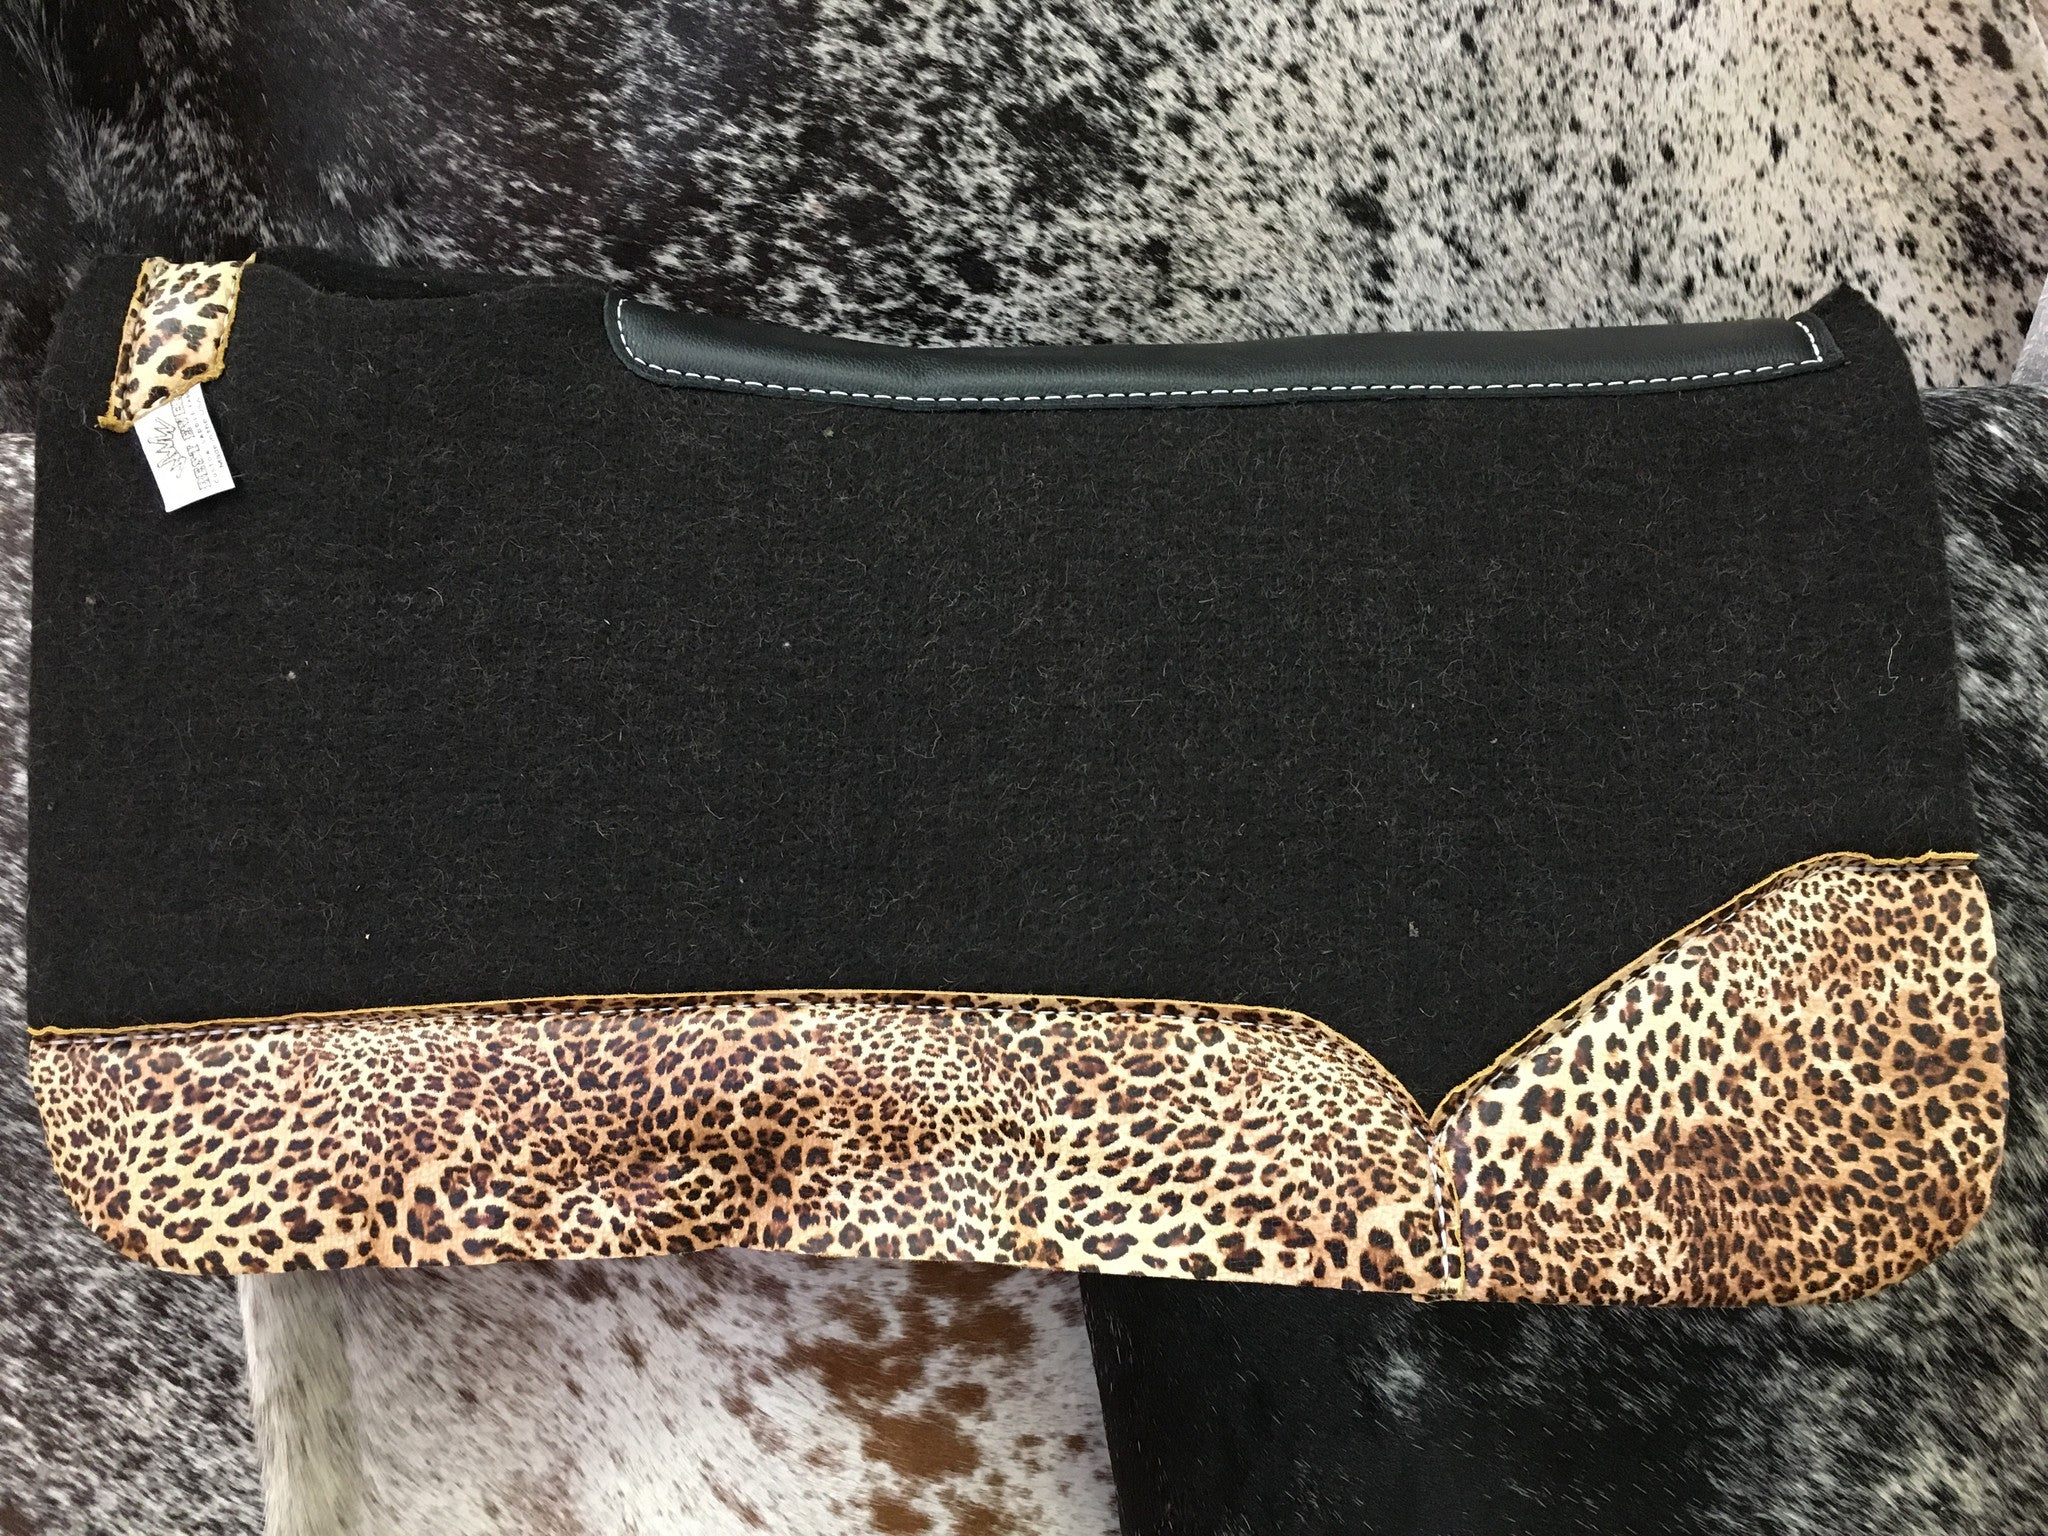 Best ever saddle pad with cheetah wear leathers